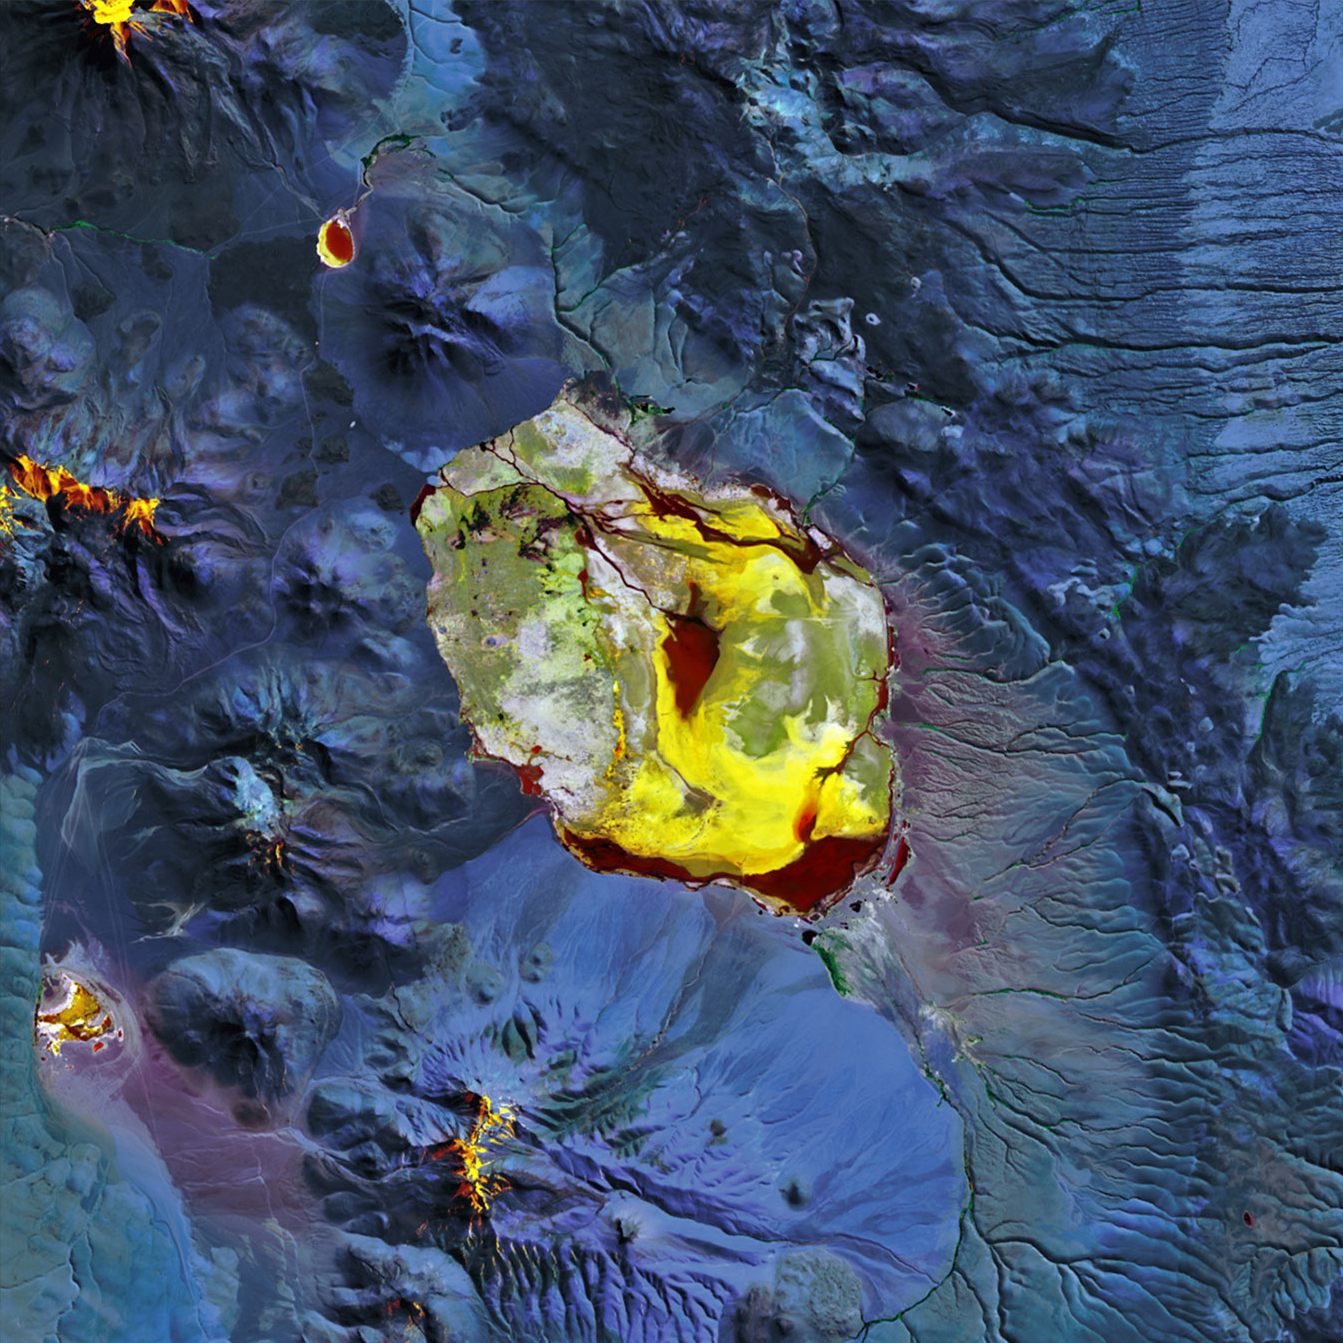 Laguna Pastos Grandes, BoliviaIn this infrared image of a shallow salt lake in a volcanic caldera, captured by Landsat 8, water appears red, while salt and other evaporated deposits appear gold and yellow. June 21, 2015.